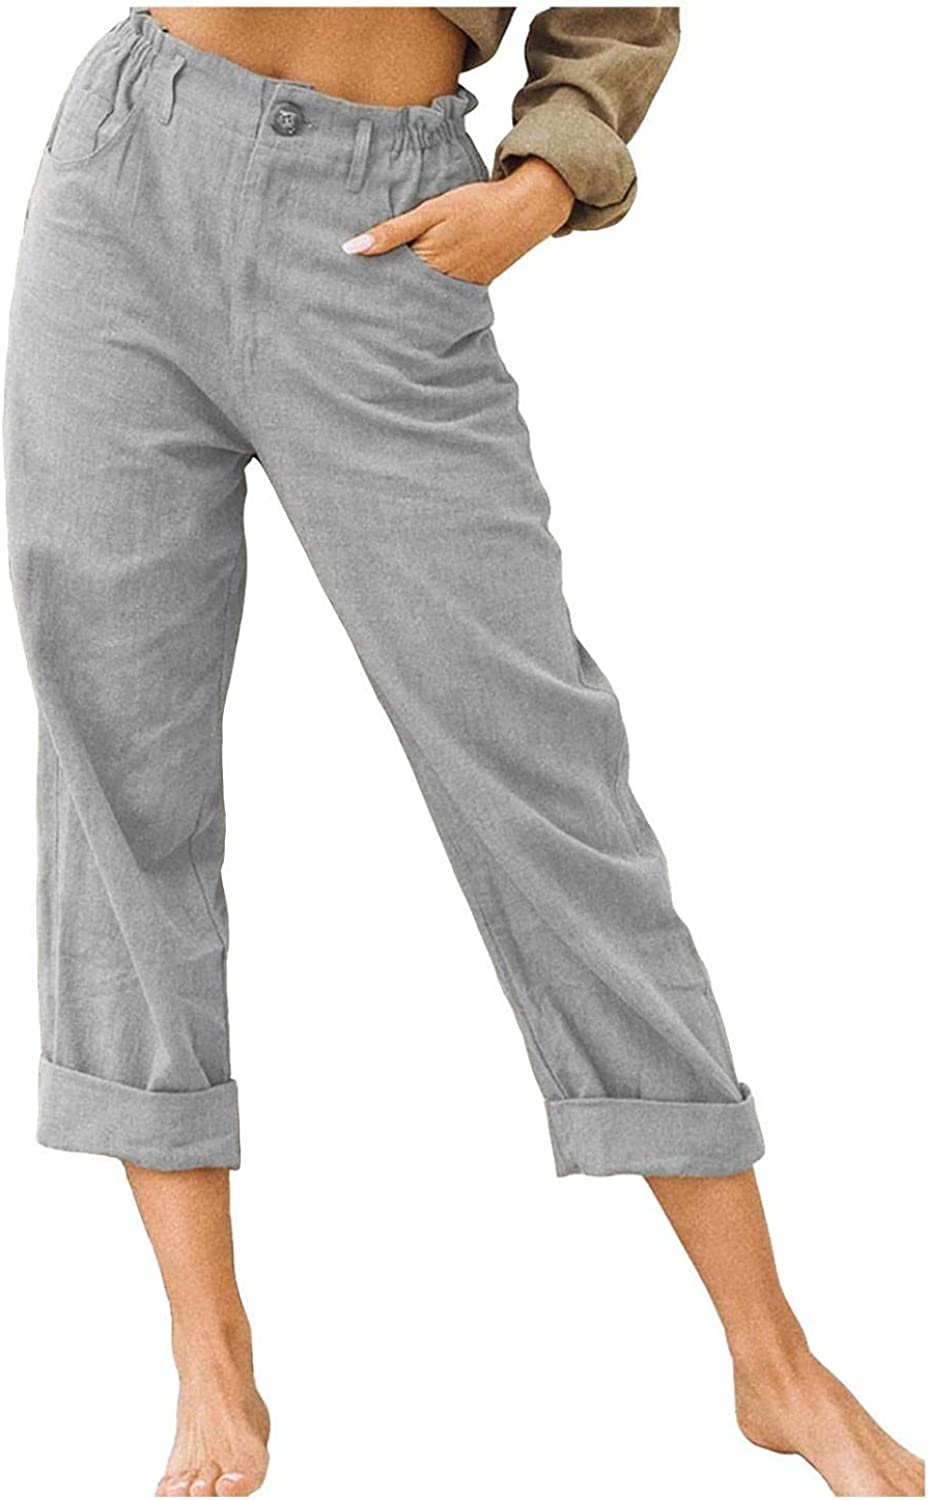 Ashowlaco Womens Linen Pants Casual Plus Size High Waist Straight Leg Pants Relaxed Fit Comfy Trousers Pants with Pocket